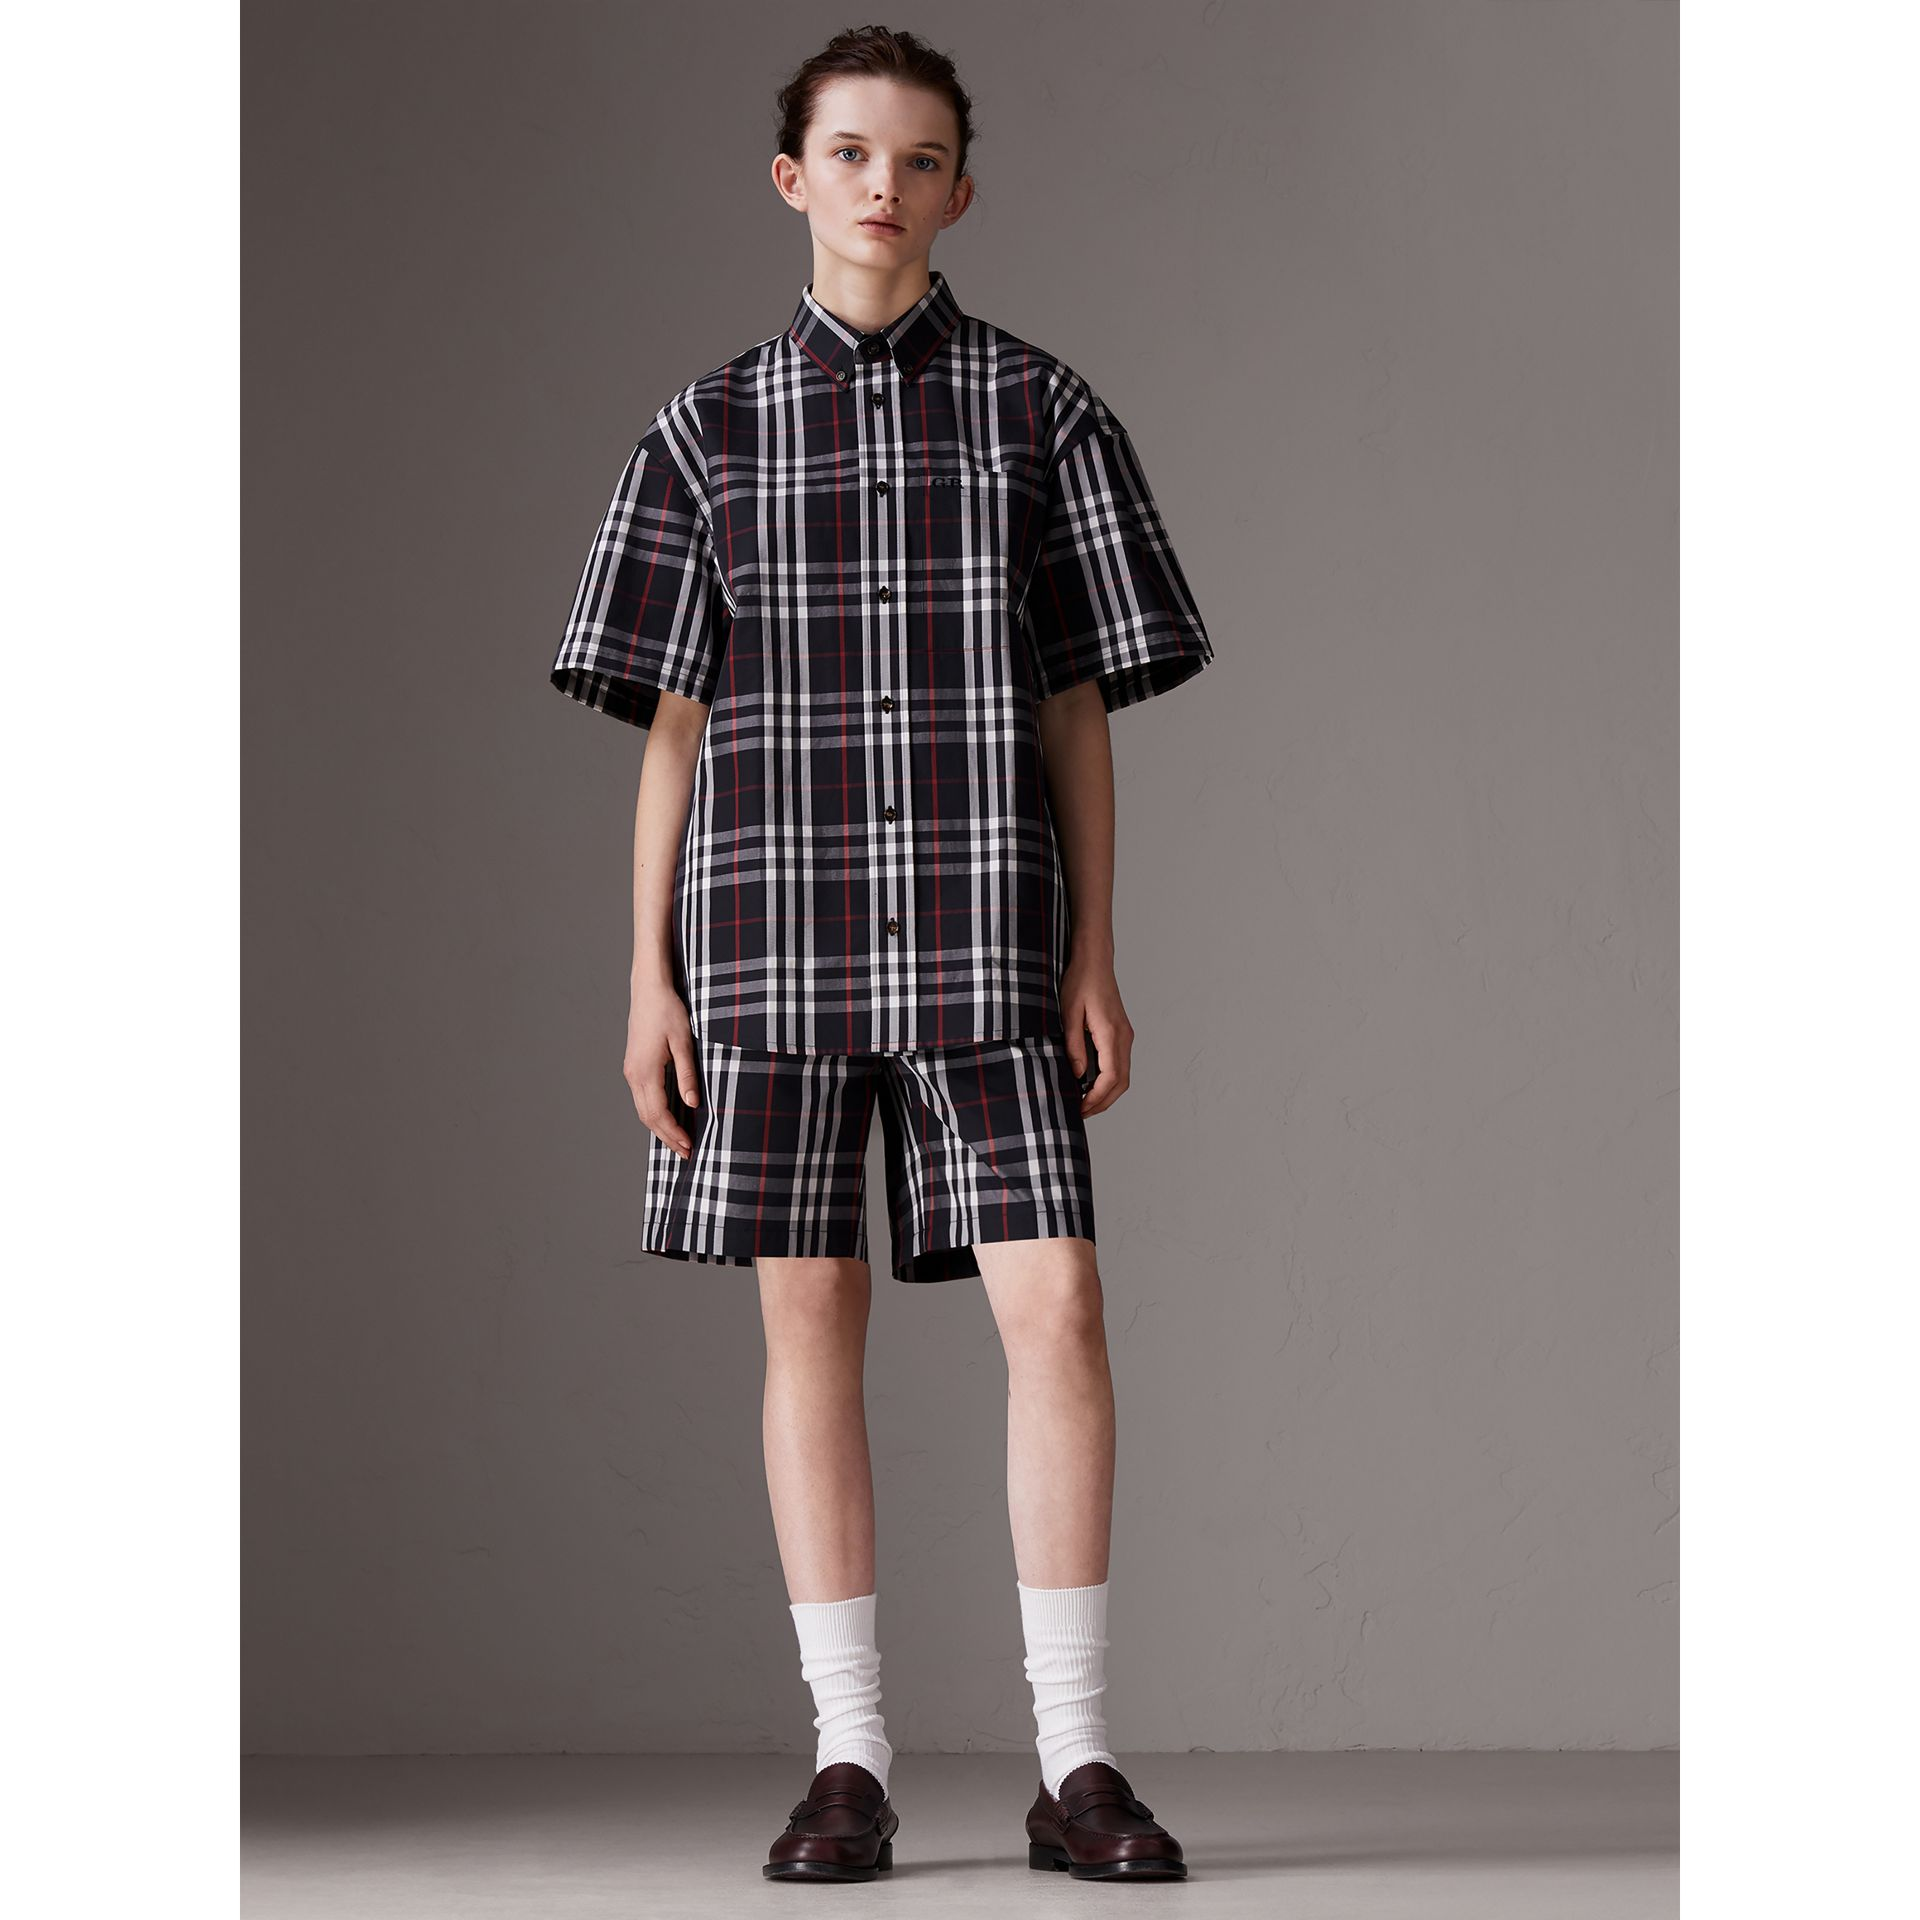 Gosha x Burberry Short-sleeve Check Shirt in Navy | Burberry - gallery image 3